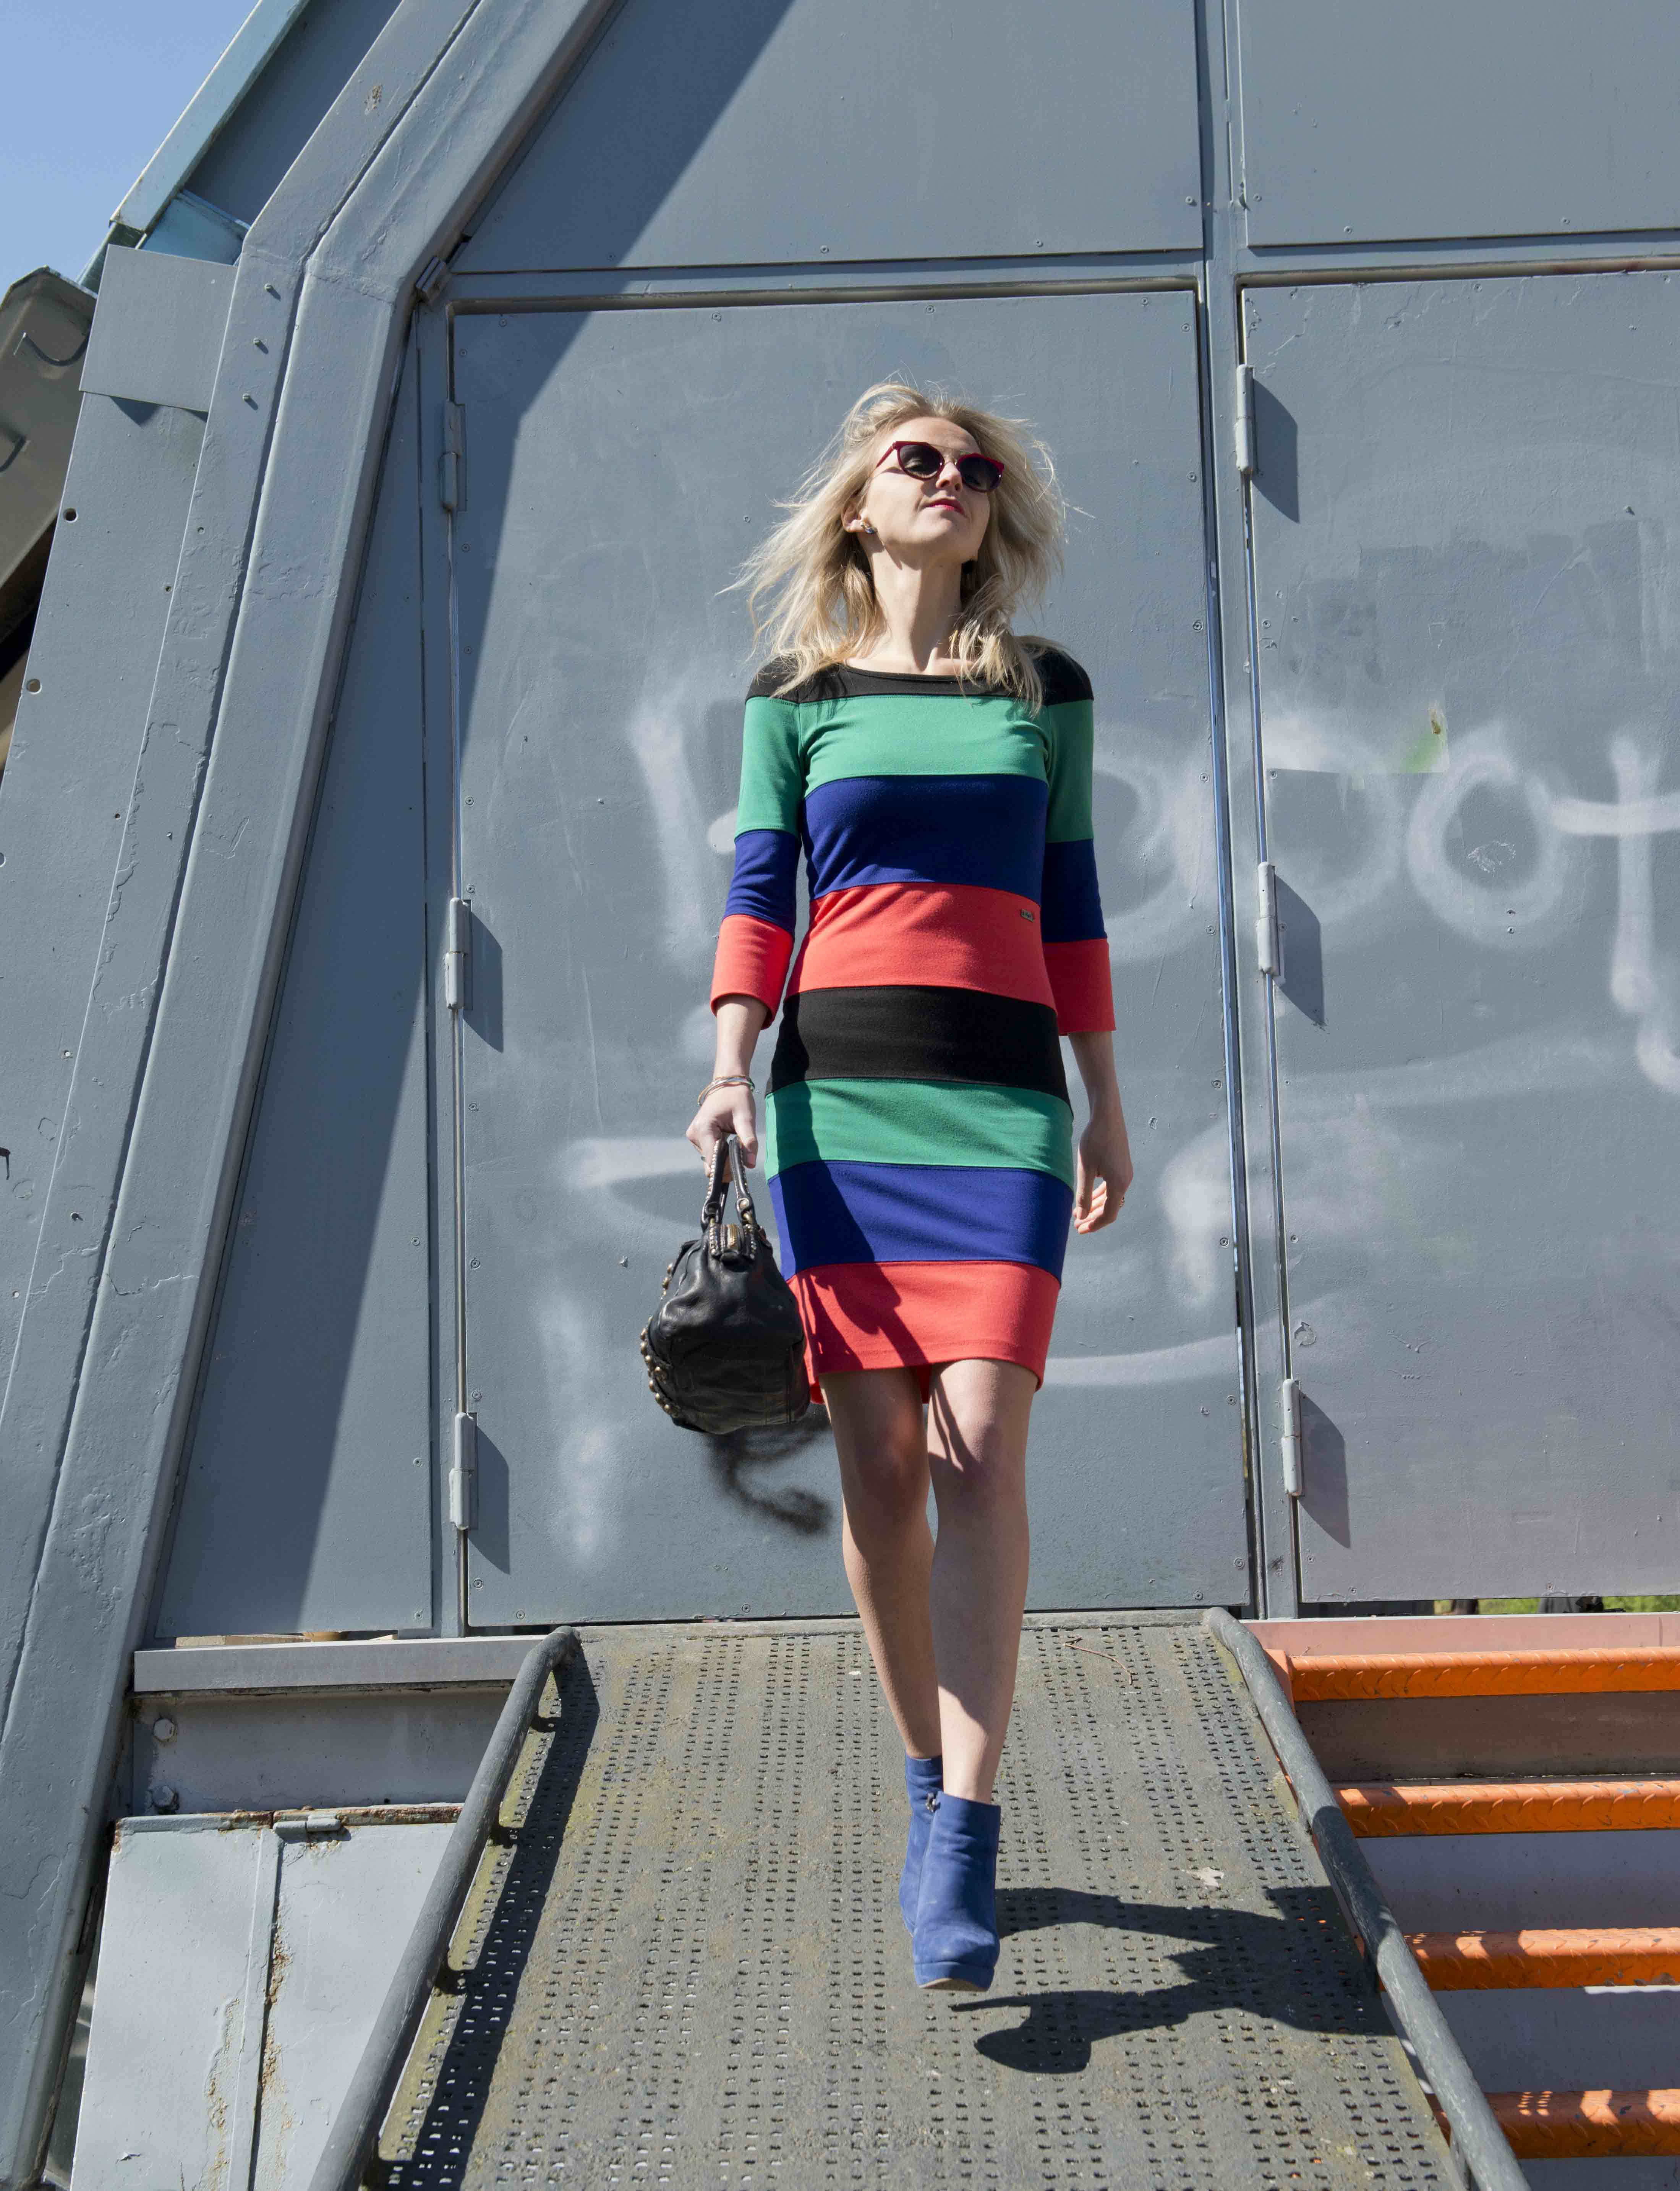 Bag at You Fashion Blog - Campomaggi Bags - Wild hair don't care - Favorite dress and black purse